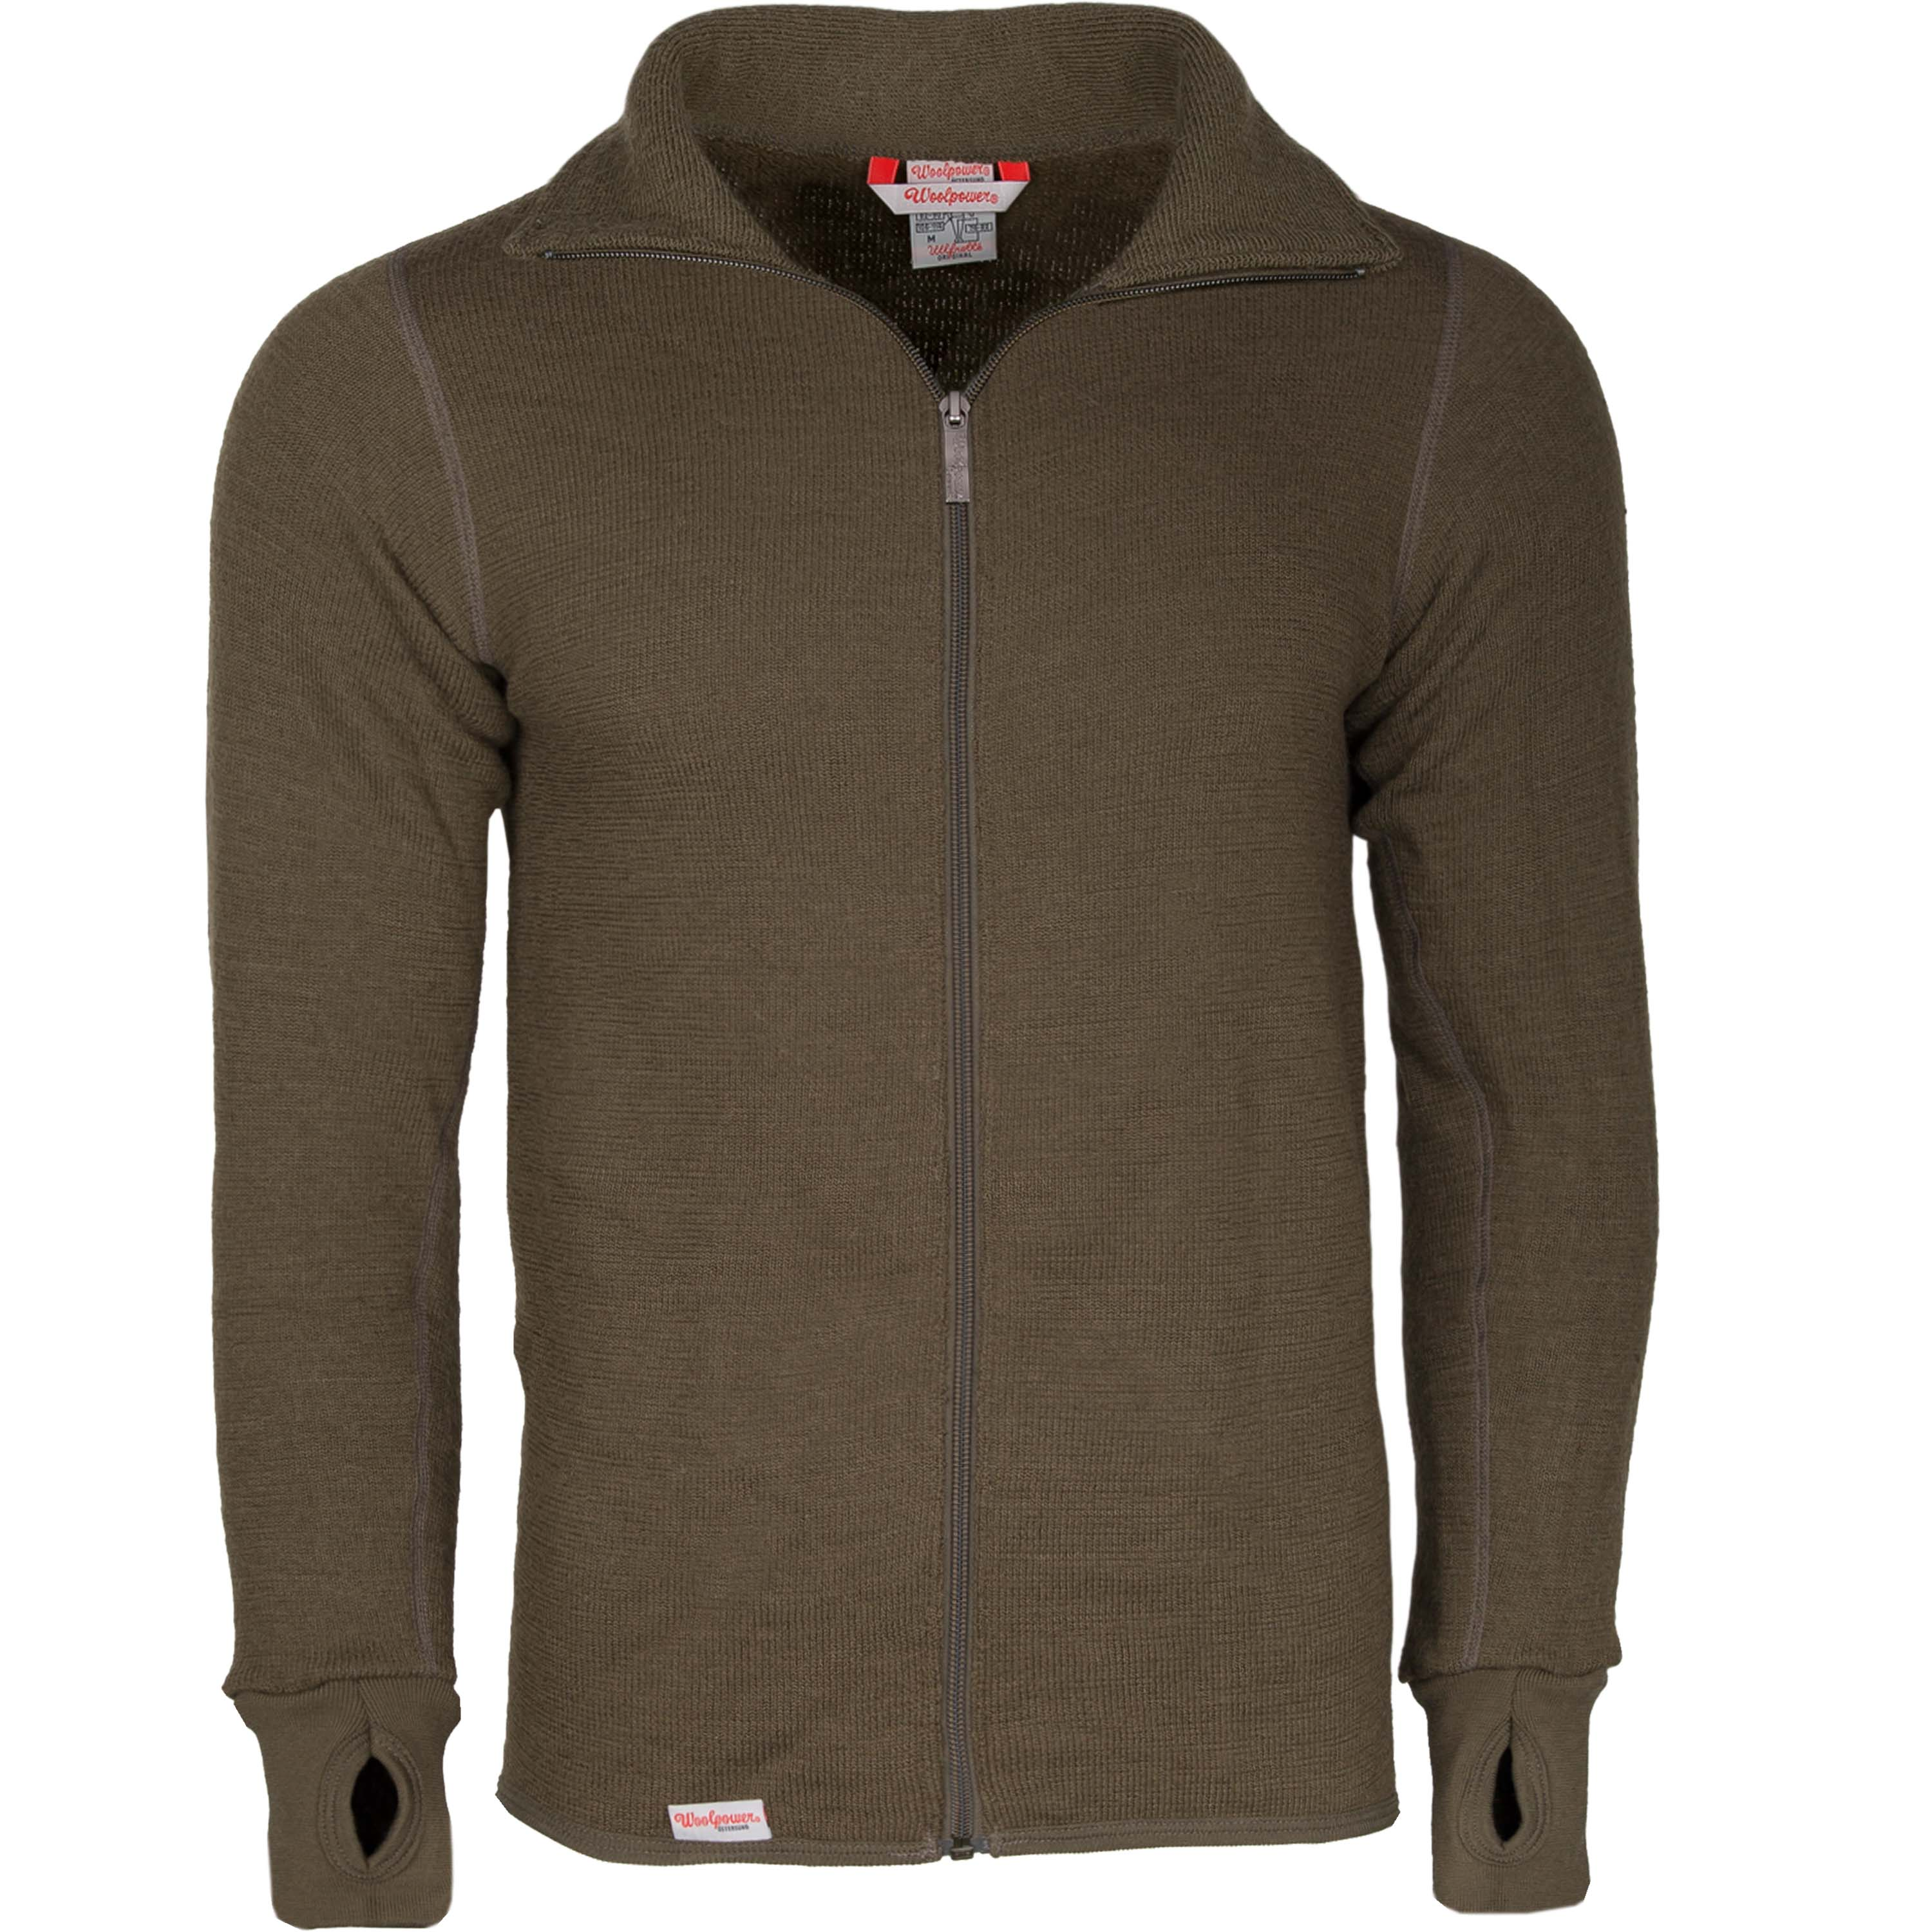 Woolpower Jacket 400 pine green